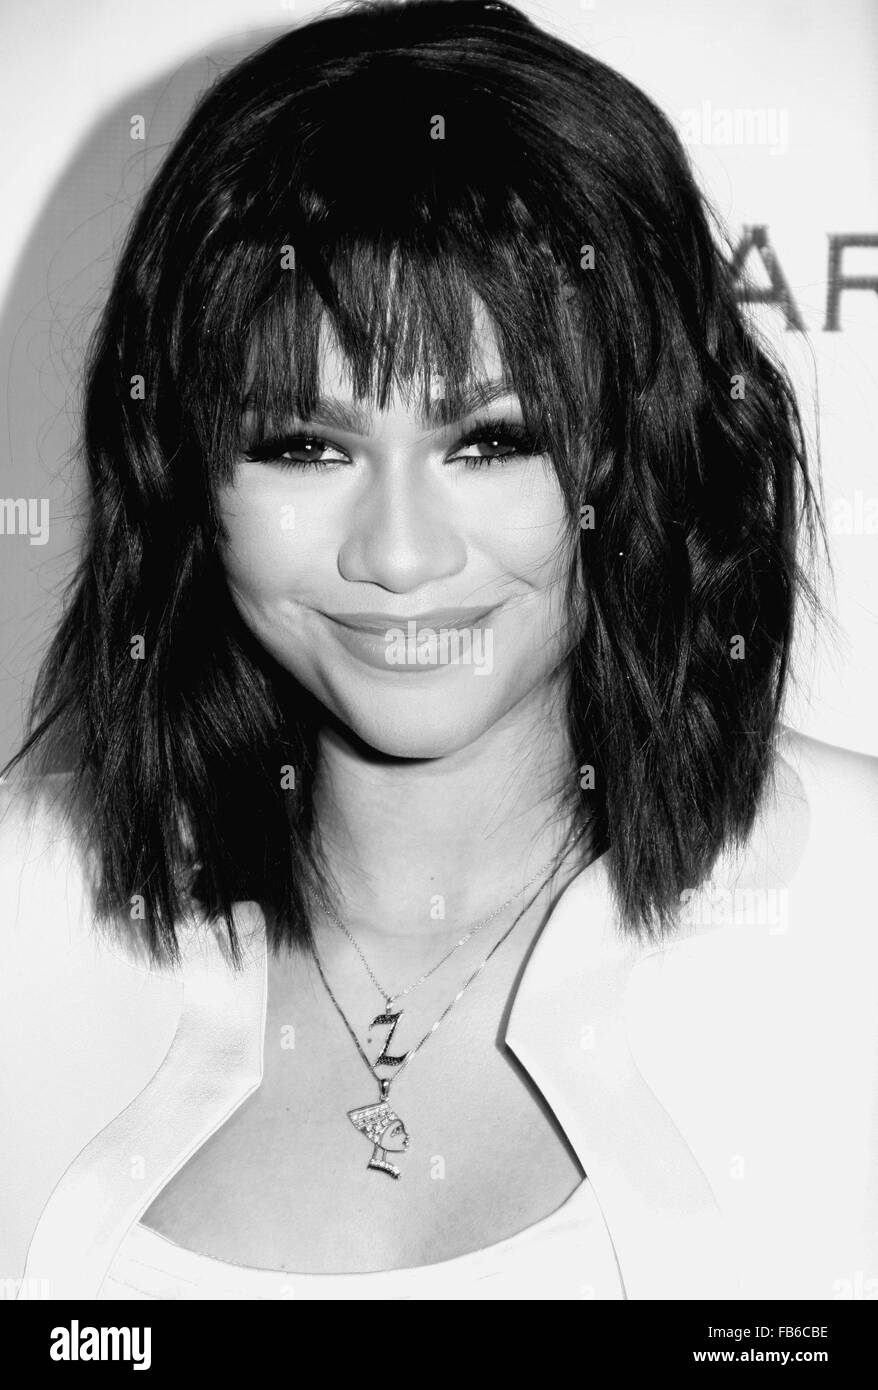 Search results for zendaya coleman black white stock photos and images